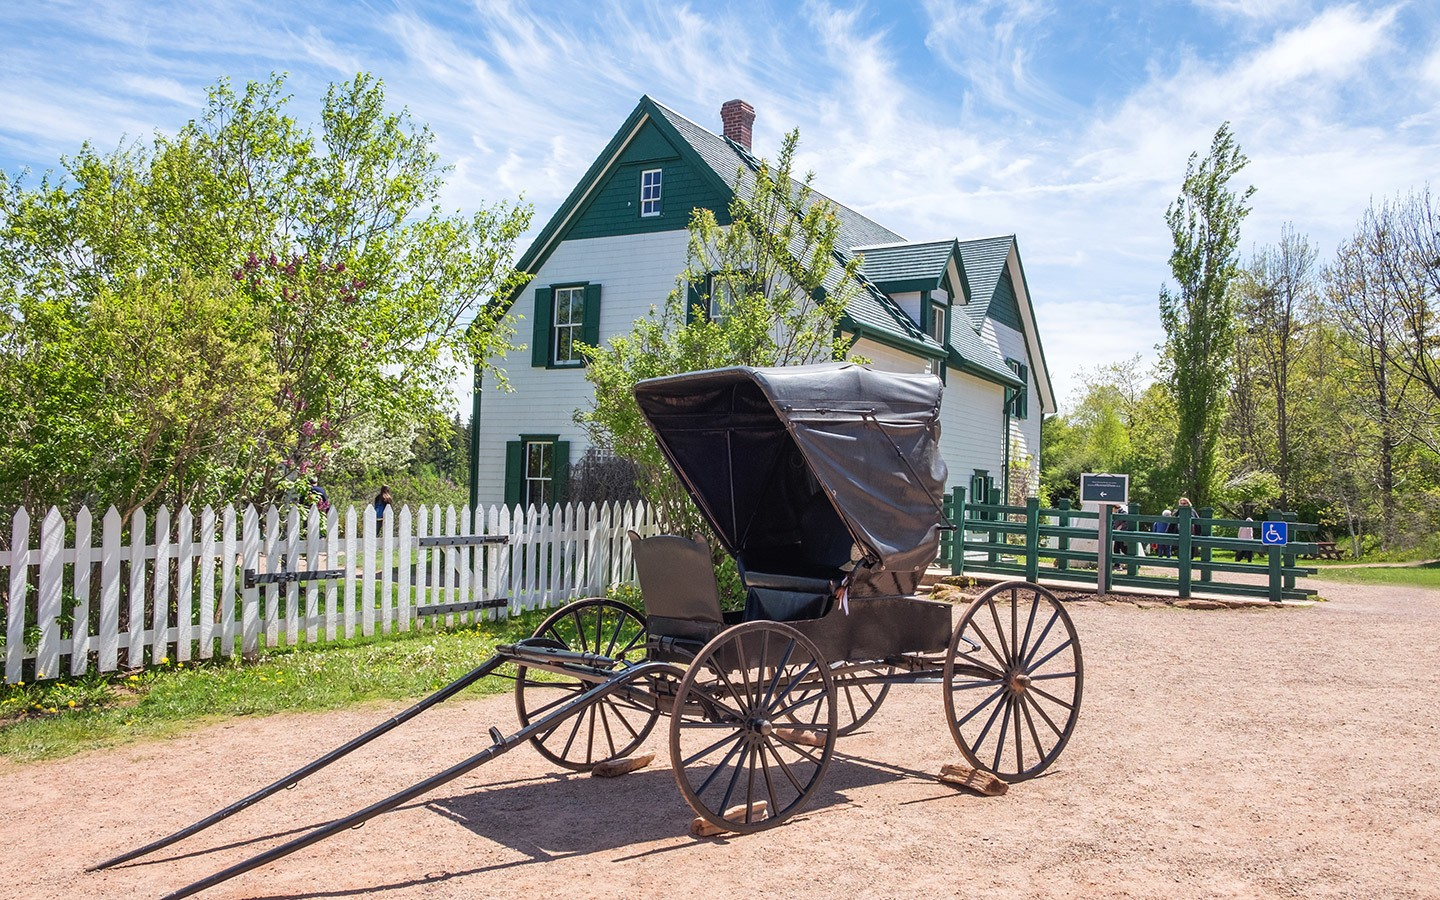 Anne of Green Gables, Prince Edward Island, Canada